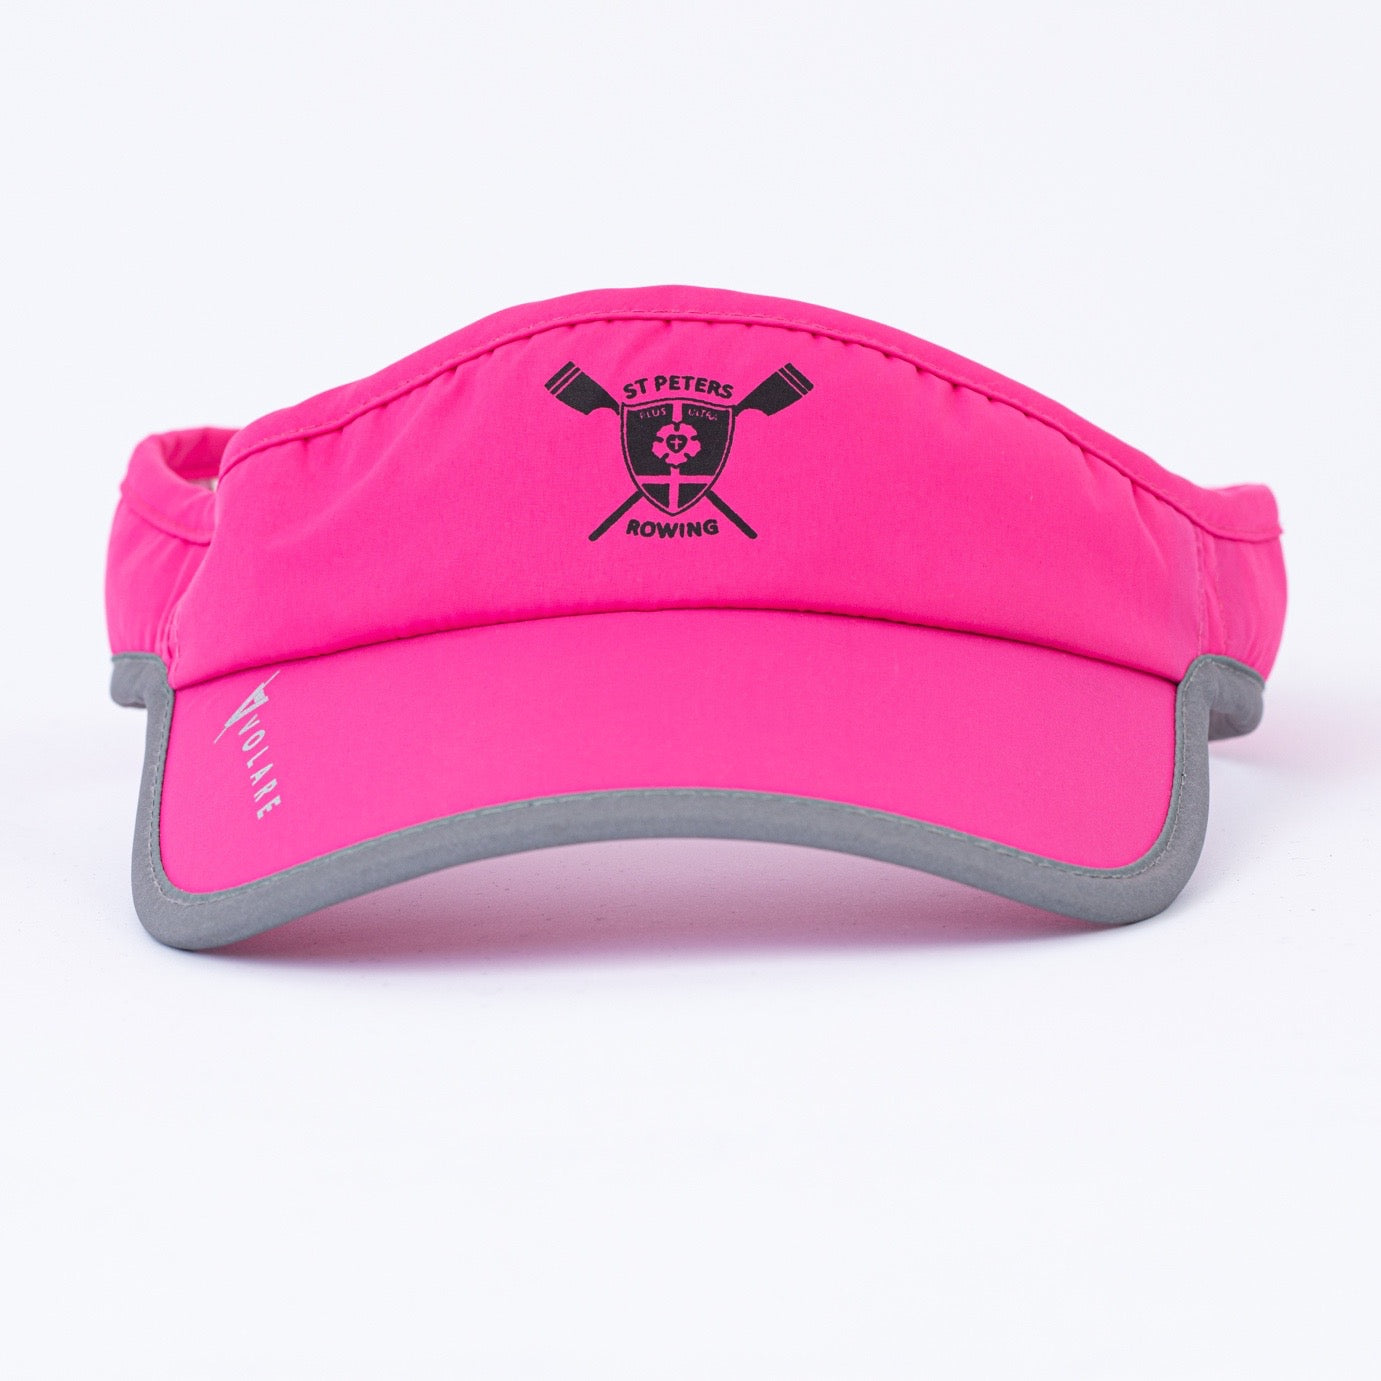 Custom Endurance Visor